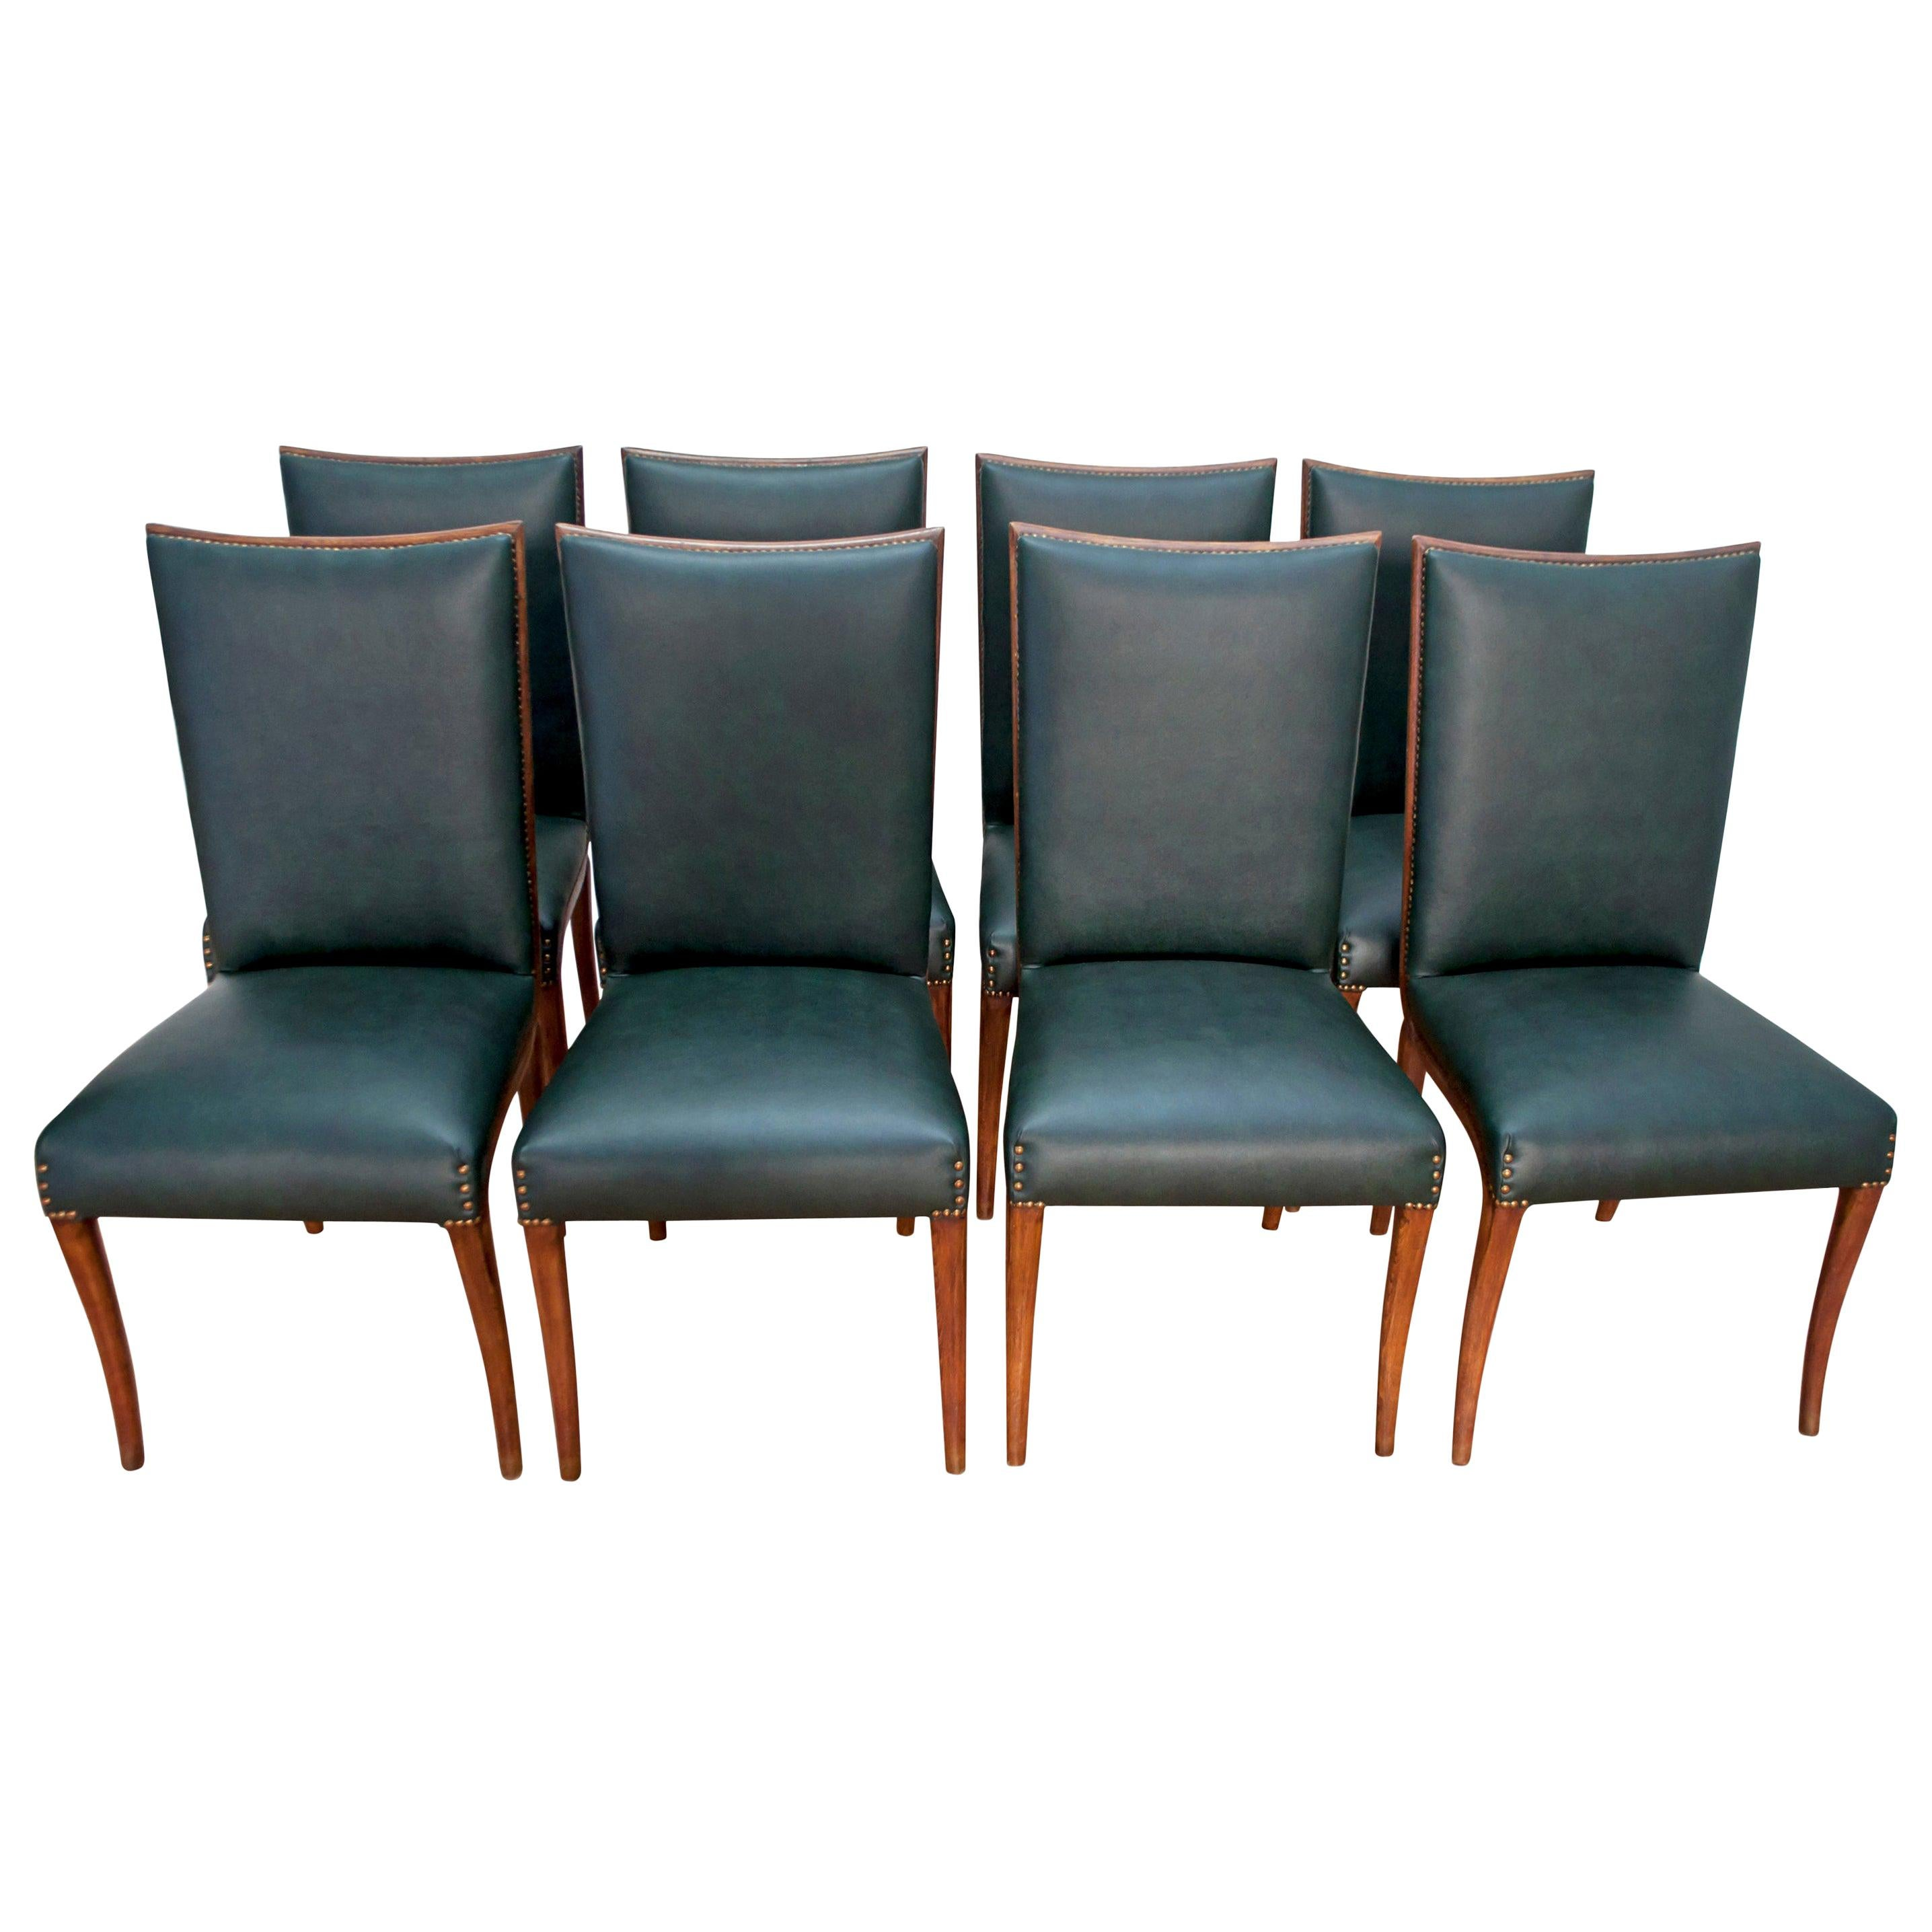 Vittorio Dassi Mid-Century Modern Italian Walnut Eight Dining Chairs, 1950s